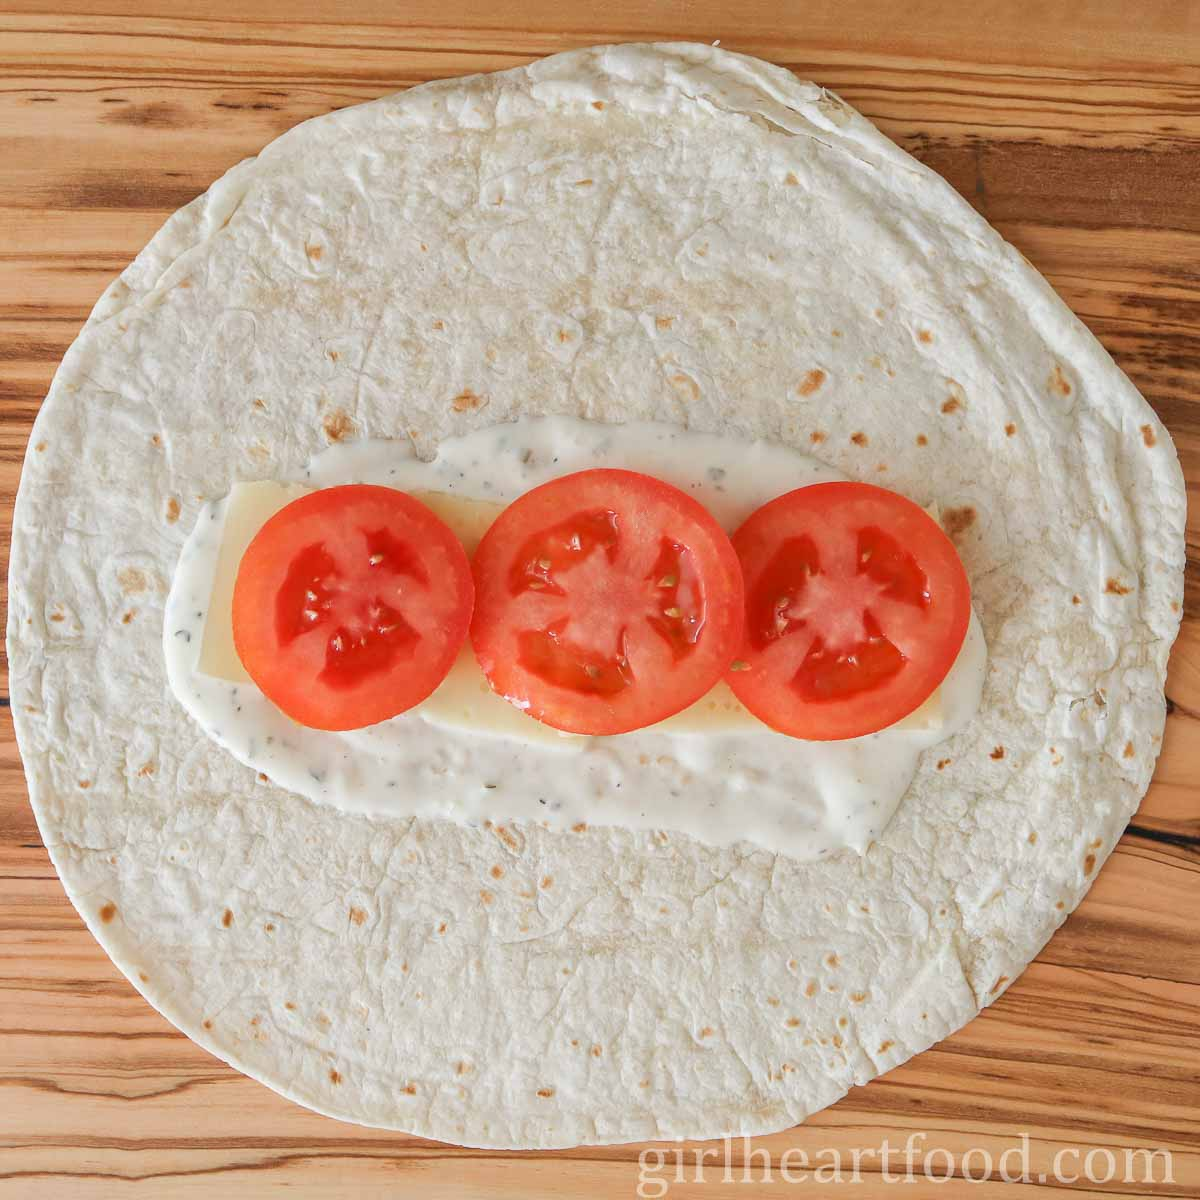 Ranch dressing, cheese and sliced tomato on a tortilla.